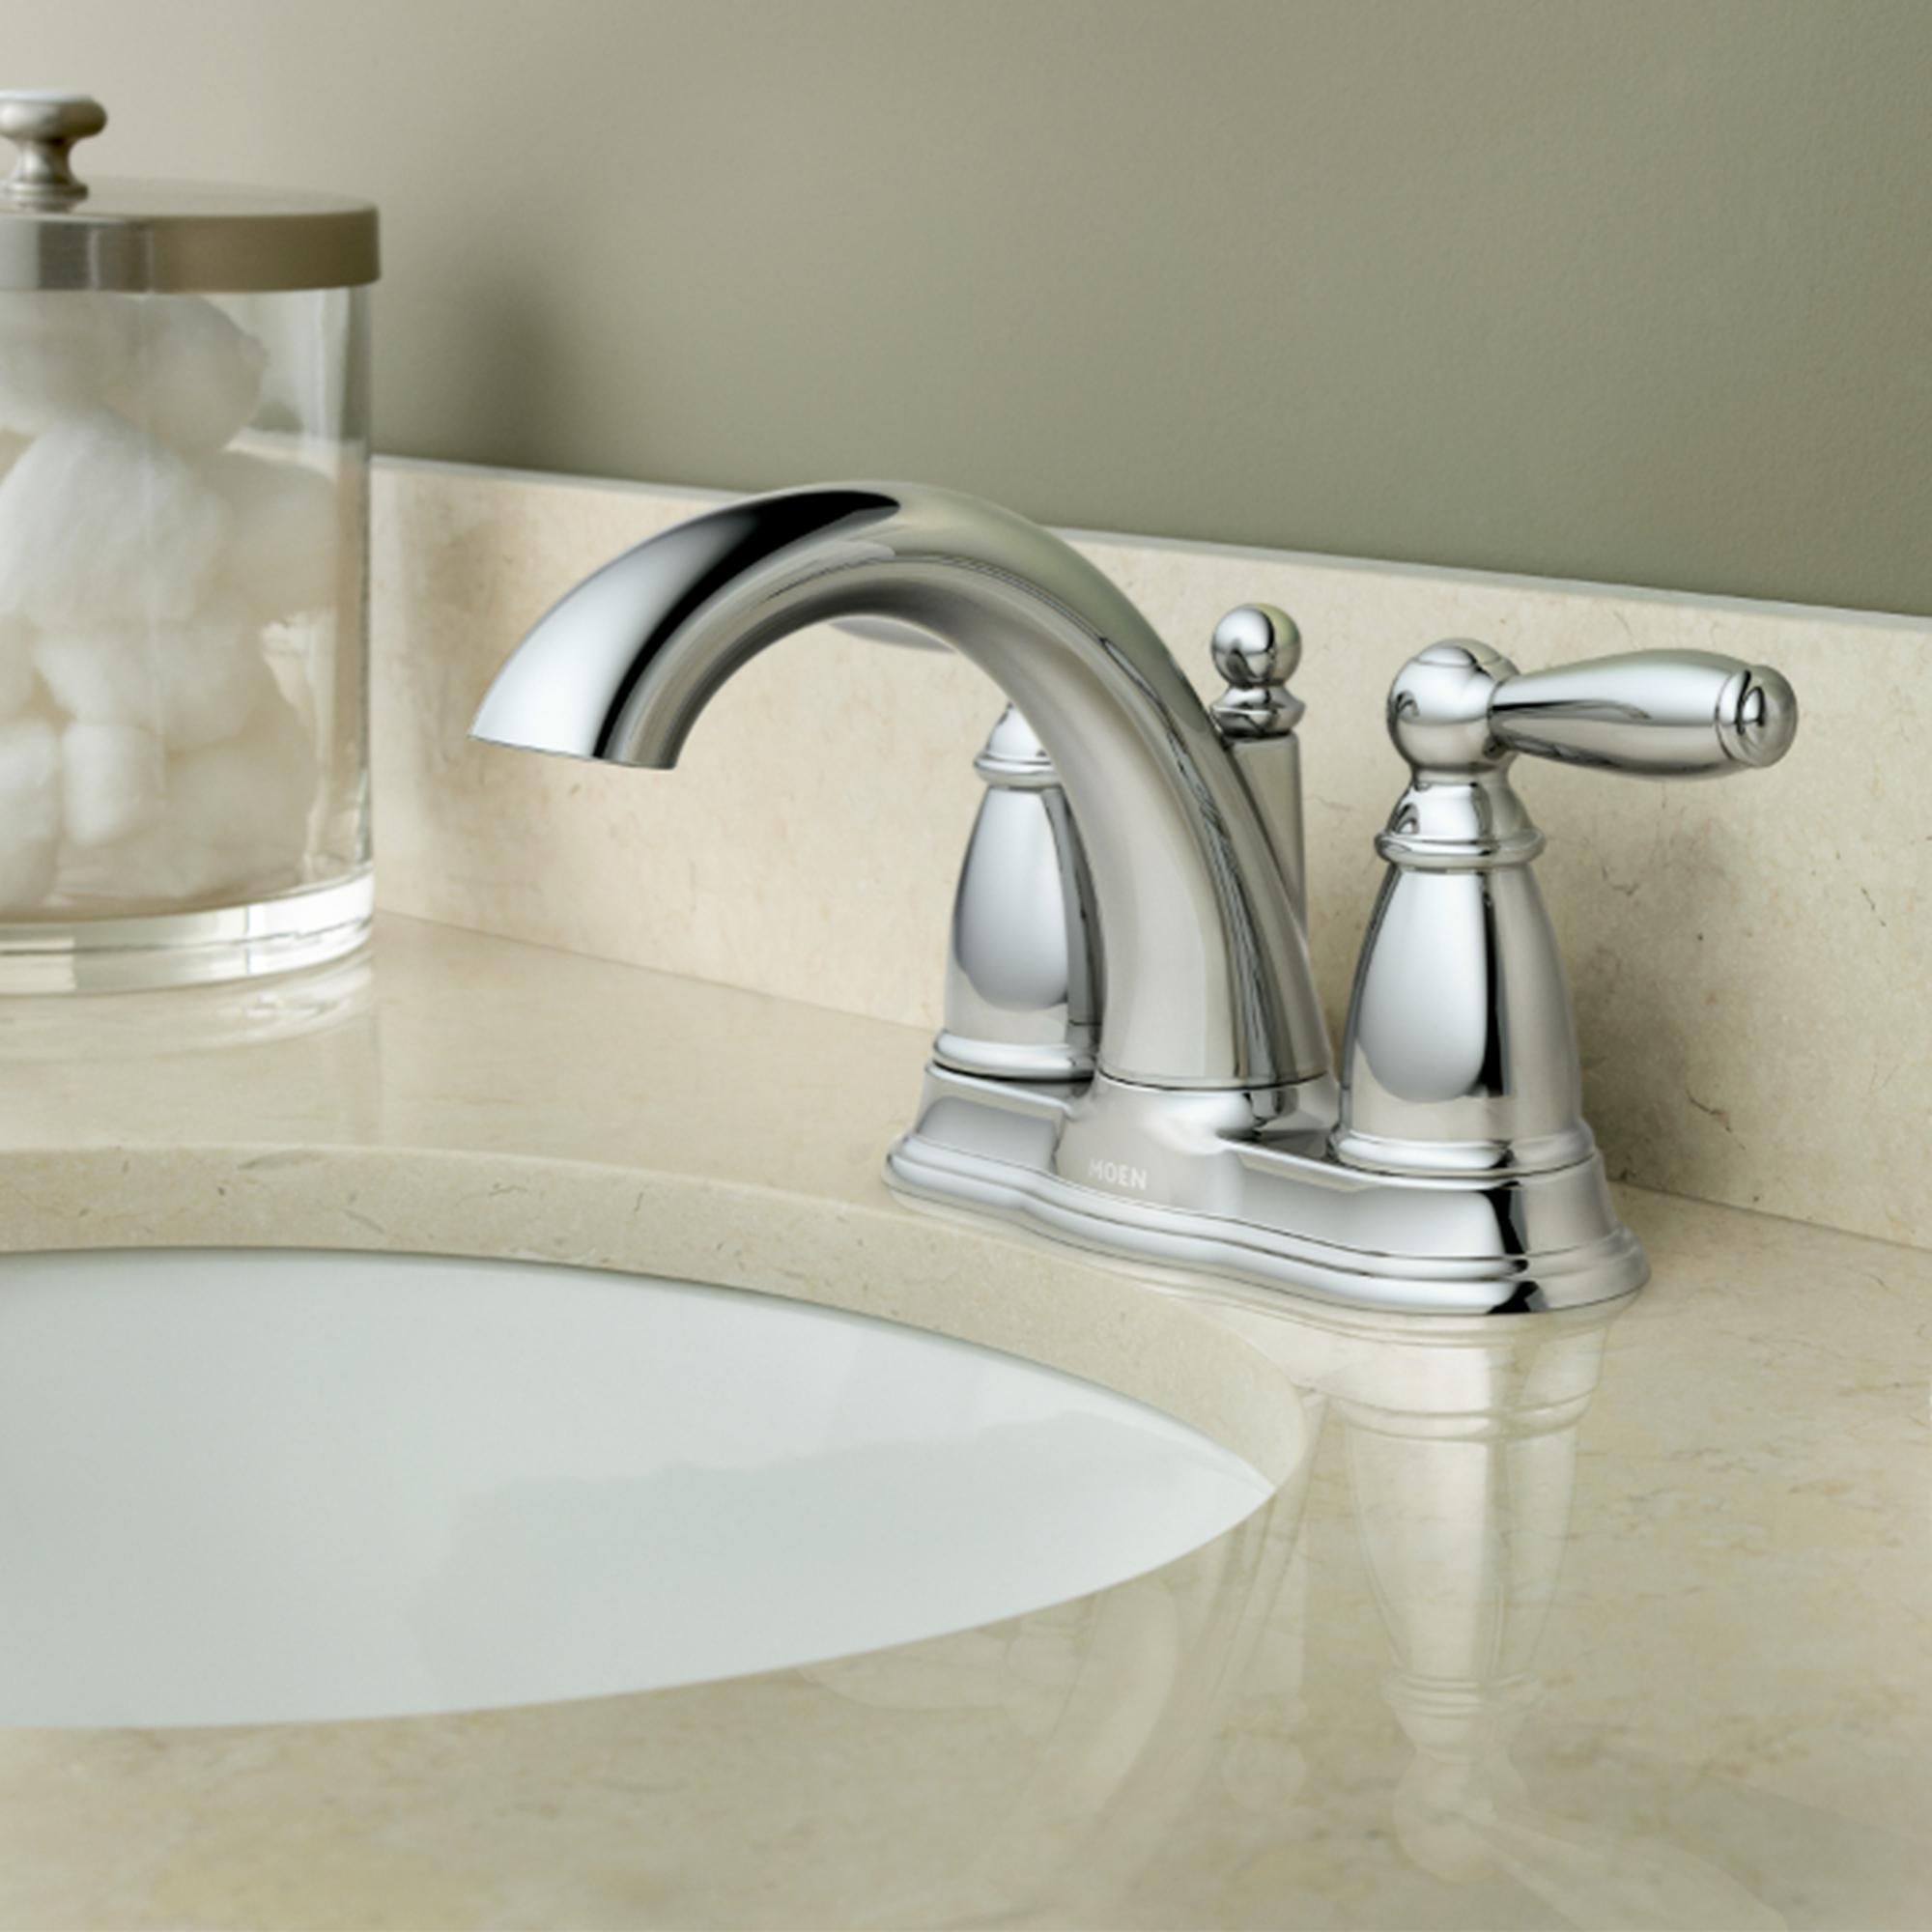 With A Durable Construction And Universal Appeal The Moen